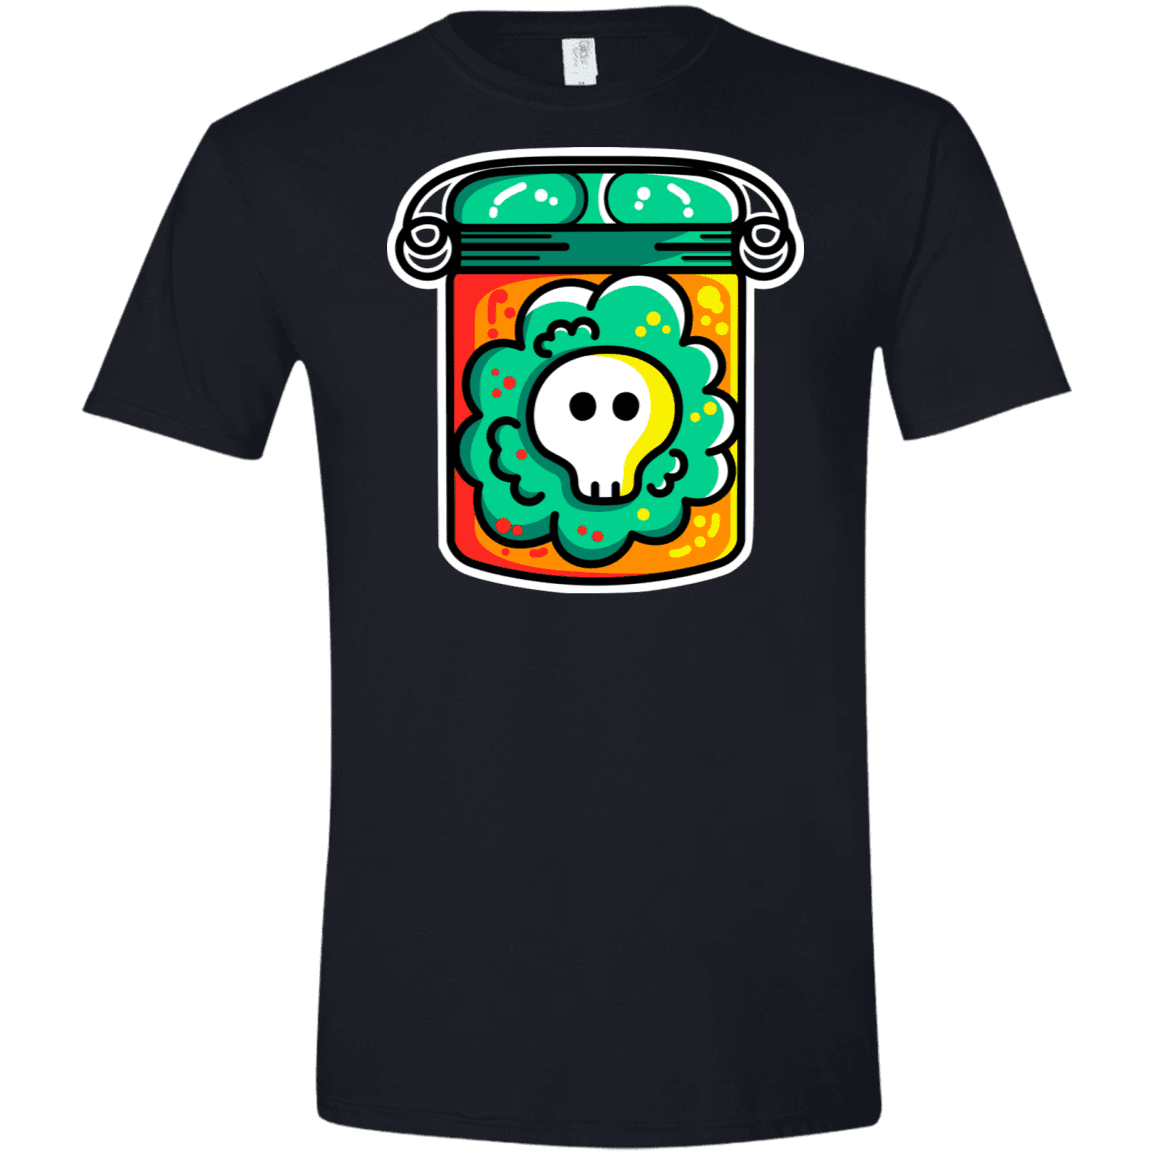 T-Shirts Black / X-Small Cute Skull In A Jar Men's Semi-Fitted Softstyle